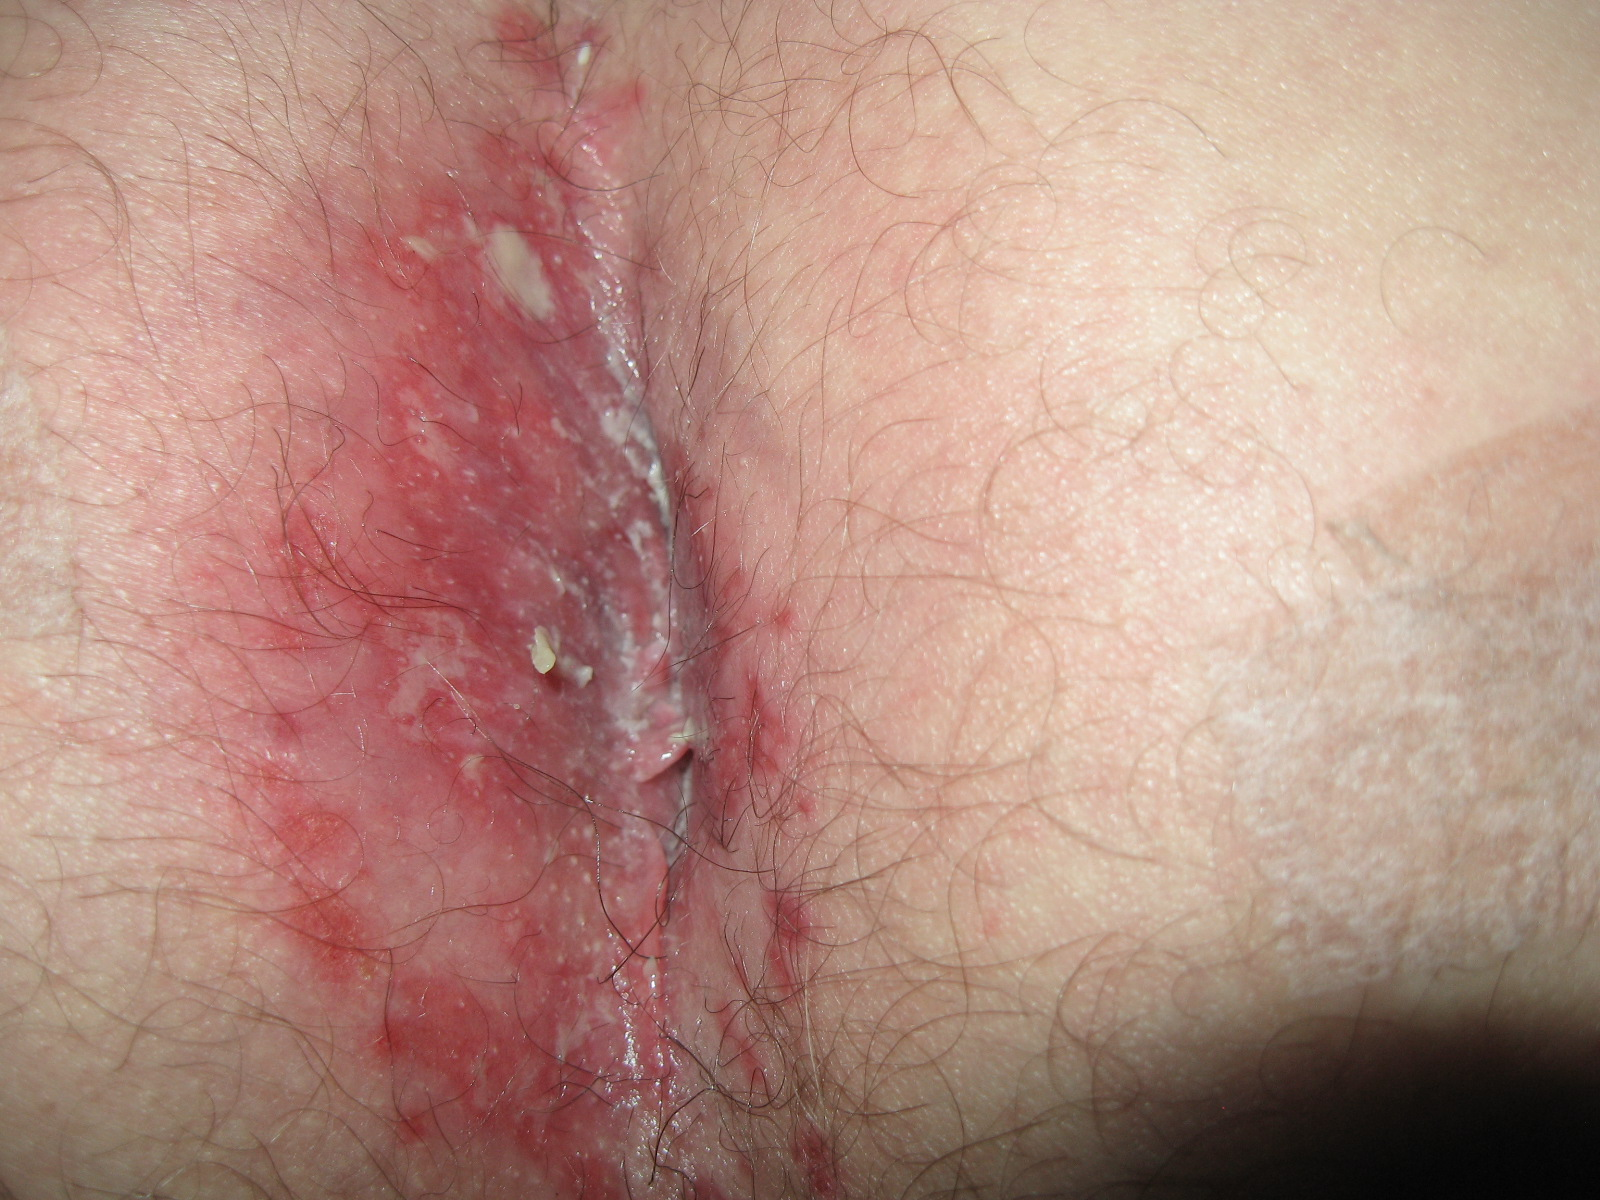 Yeast Infection Skin Rash Pictures, Symptoms, Treatment Causes